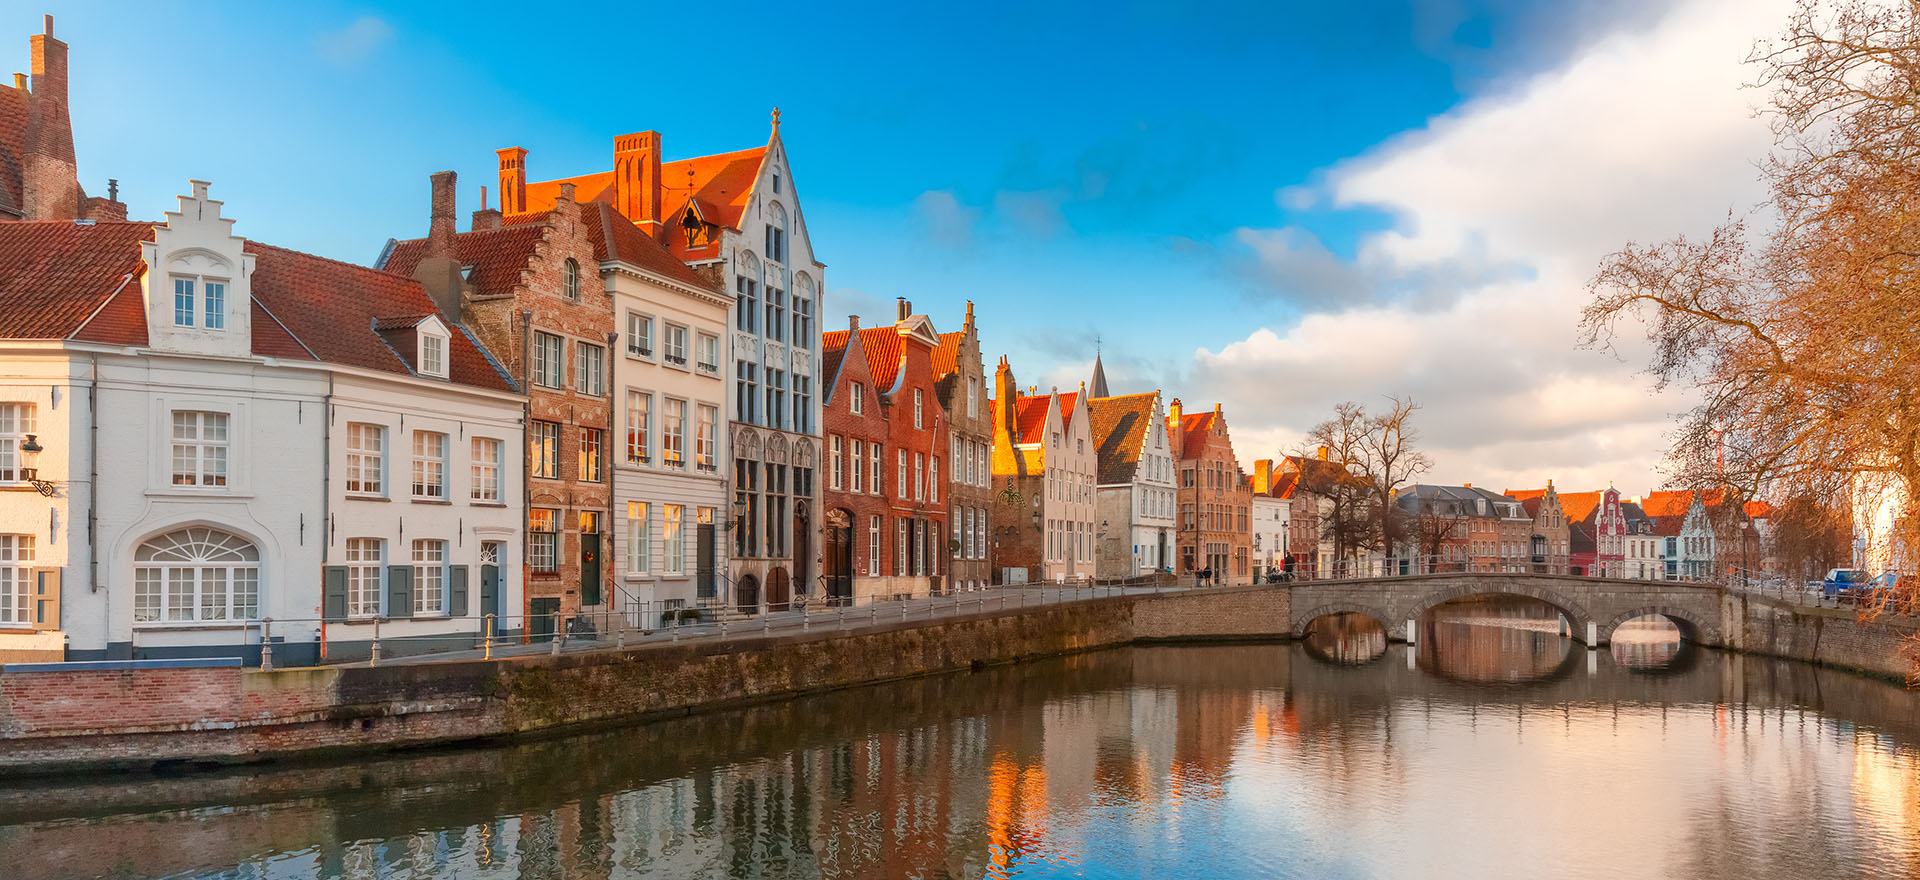 Bruges | Canals | Belgium | River Cruises in Belgium